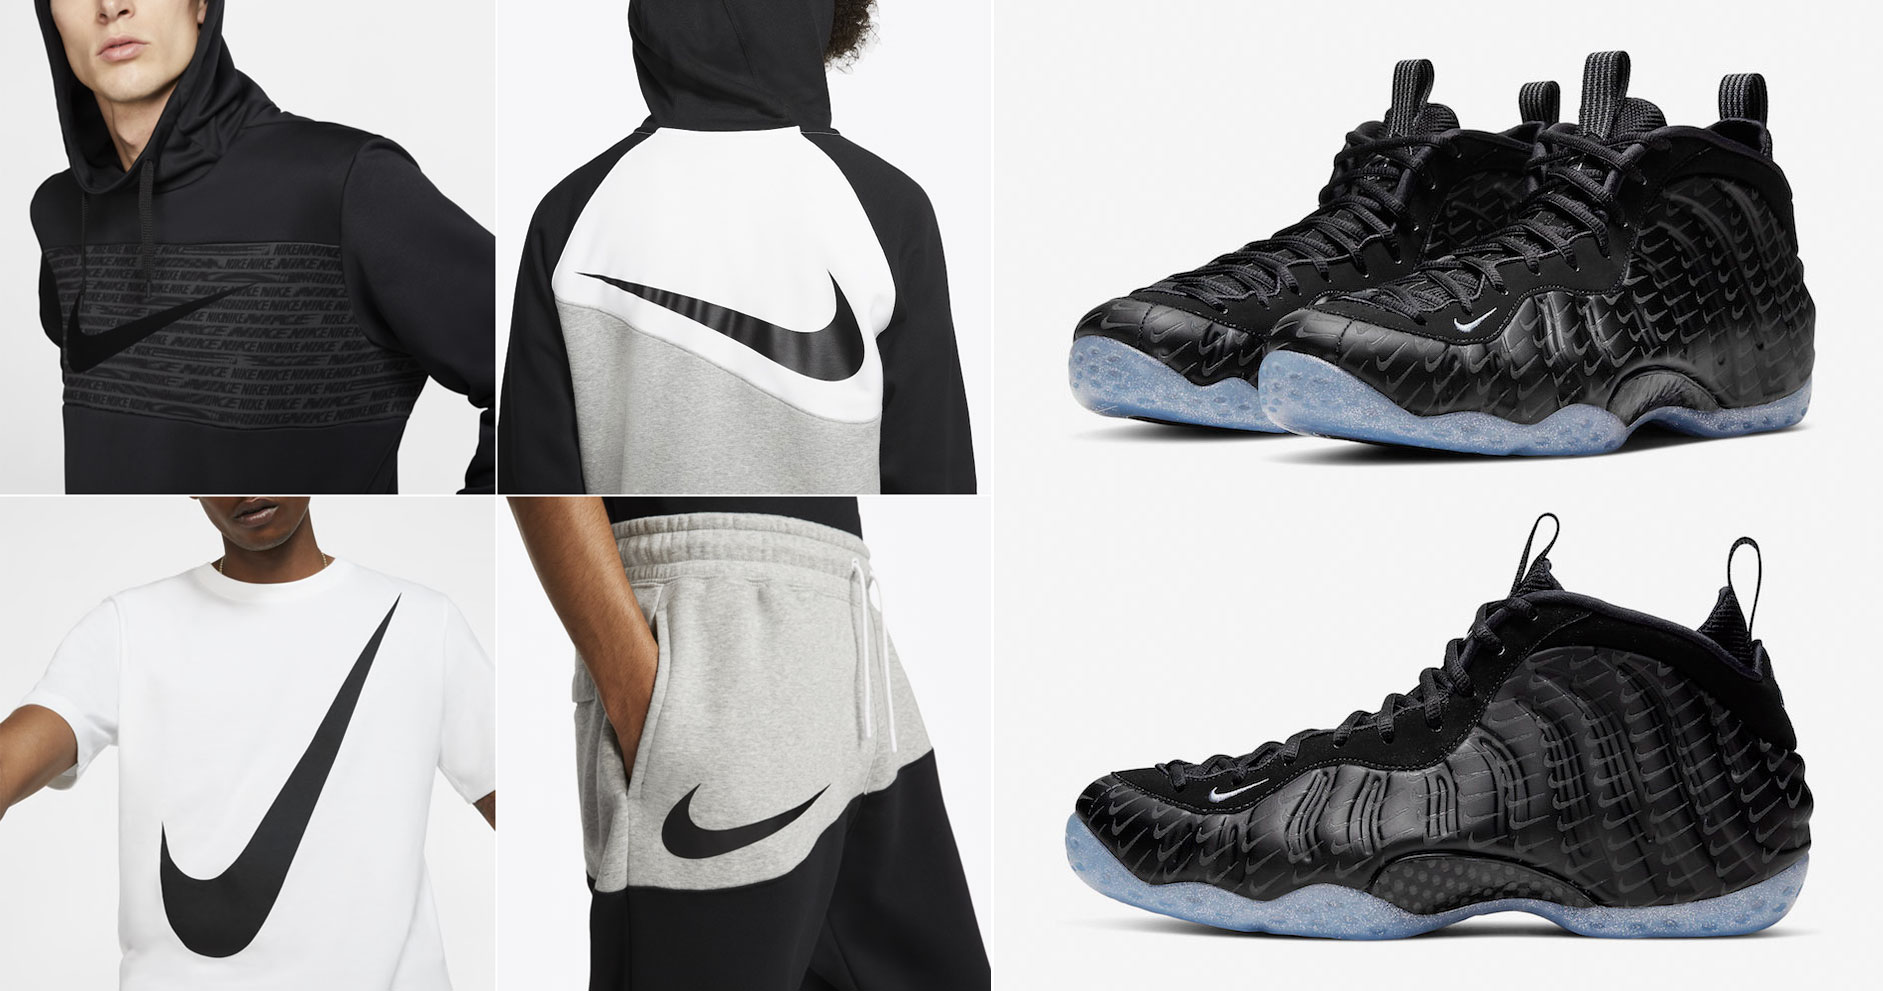 nike-air-foamposite-one-swoosh-clothing